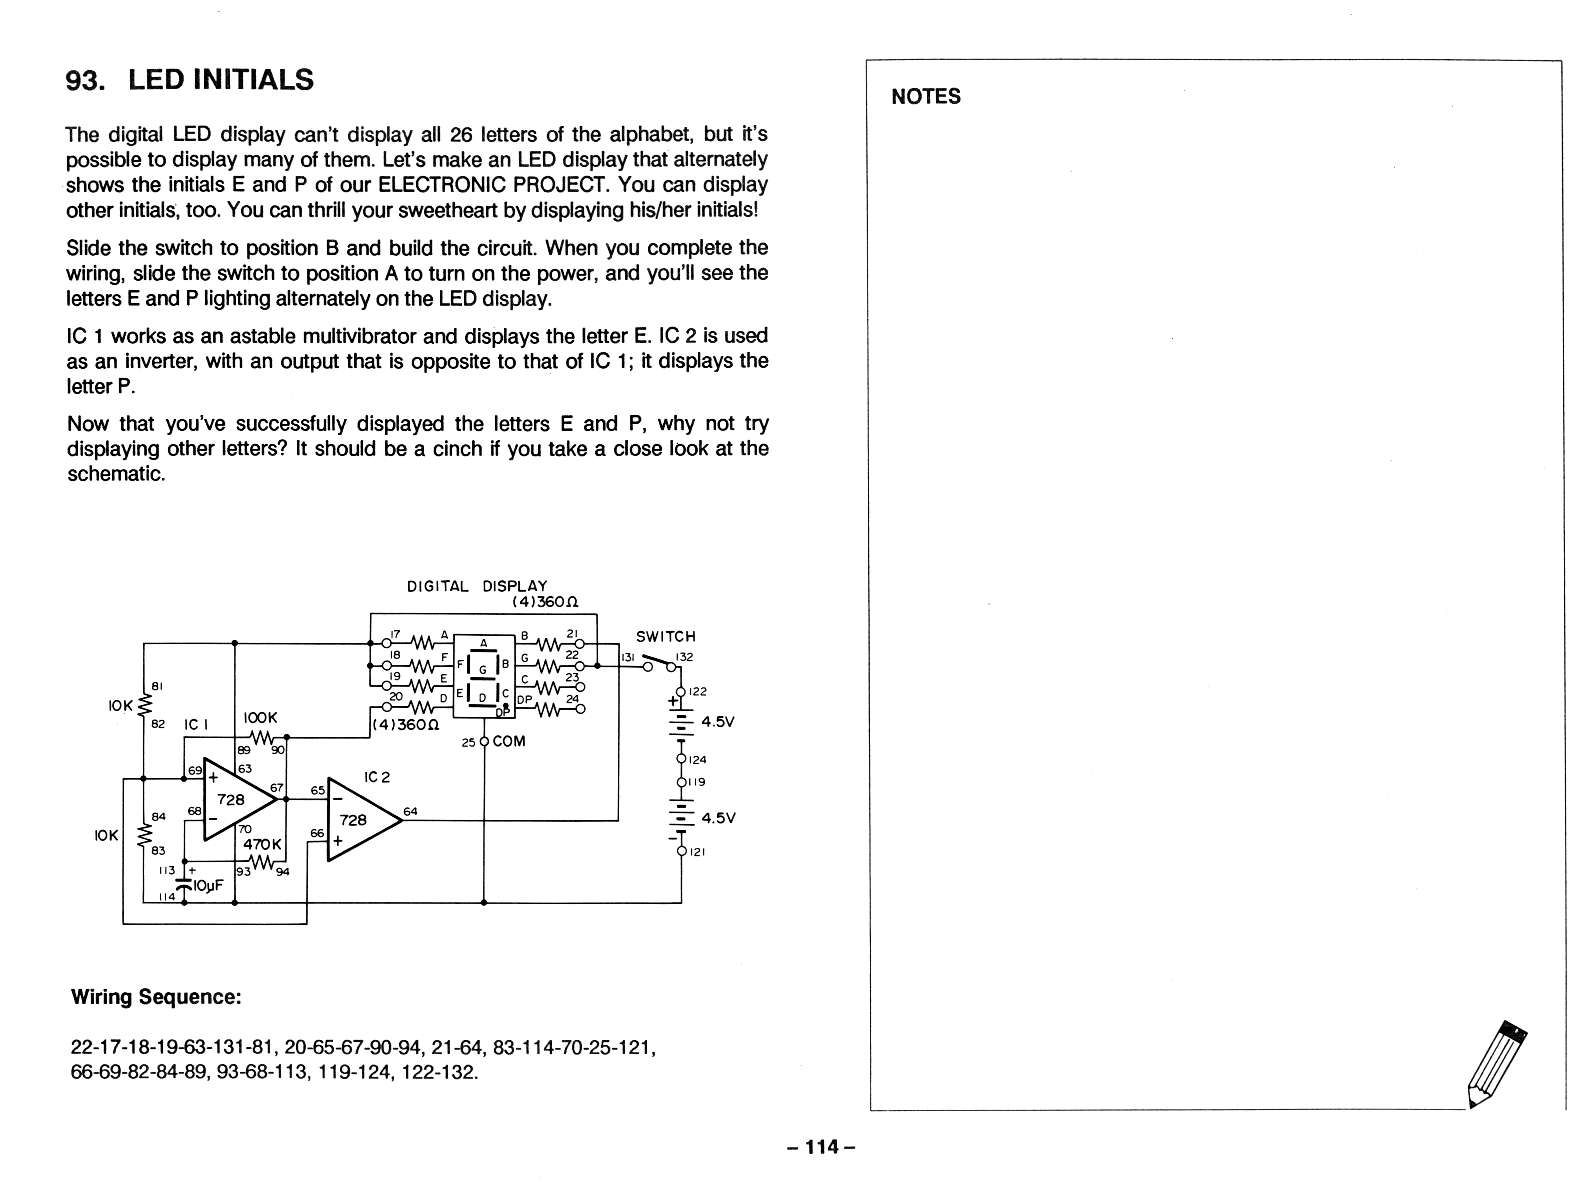 Index Of Lights Site 900 Miscprojects Block Diagram Digital Clock Newhairstylesformen2014com Page93